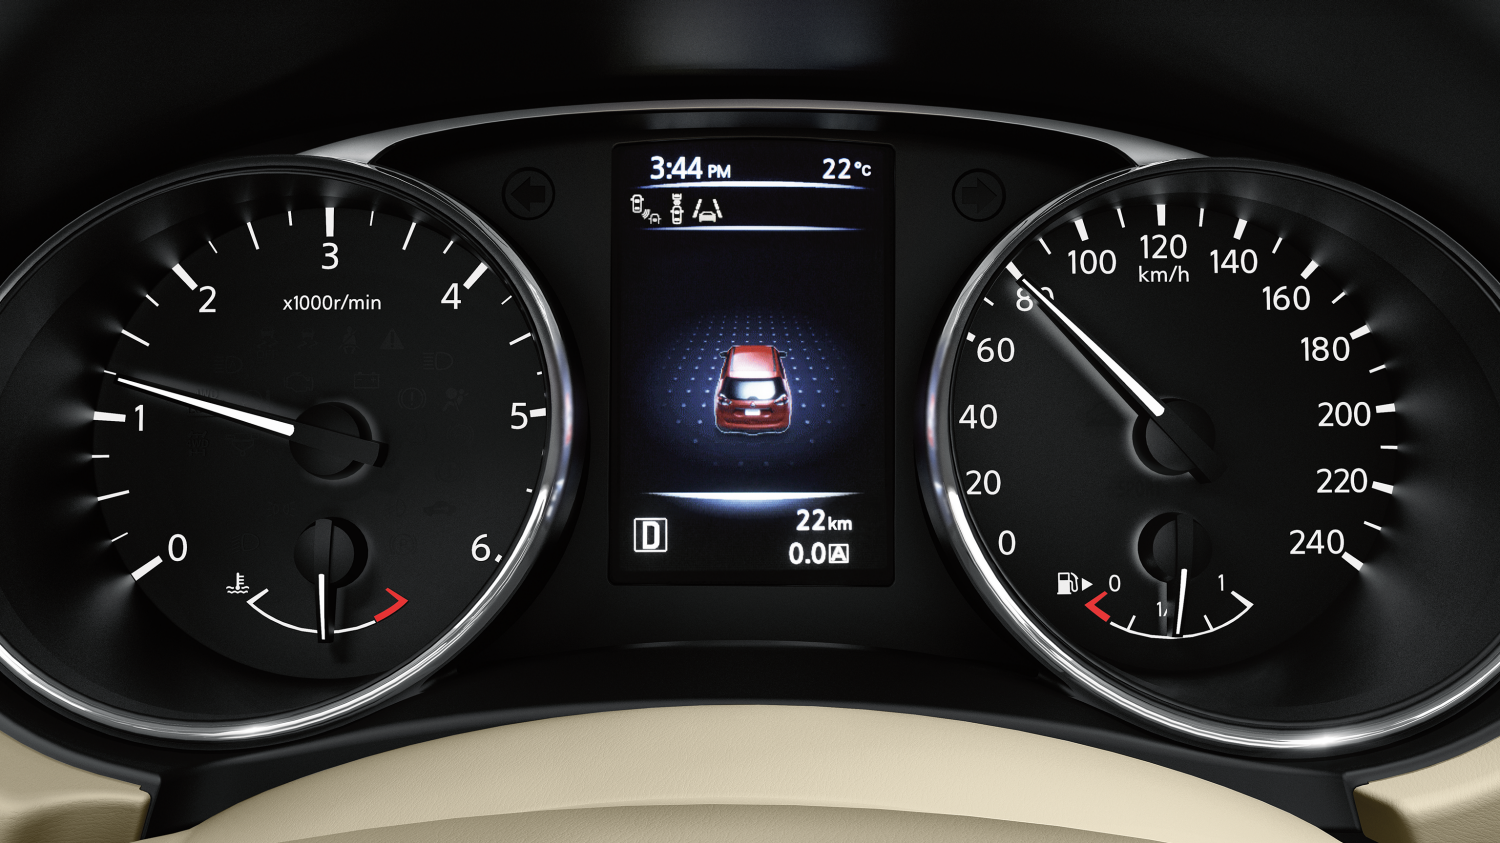 Nissan X-TRAIL SUV - Advanced Drive-Assist Display